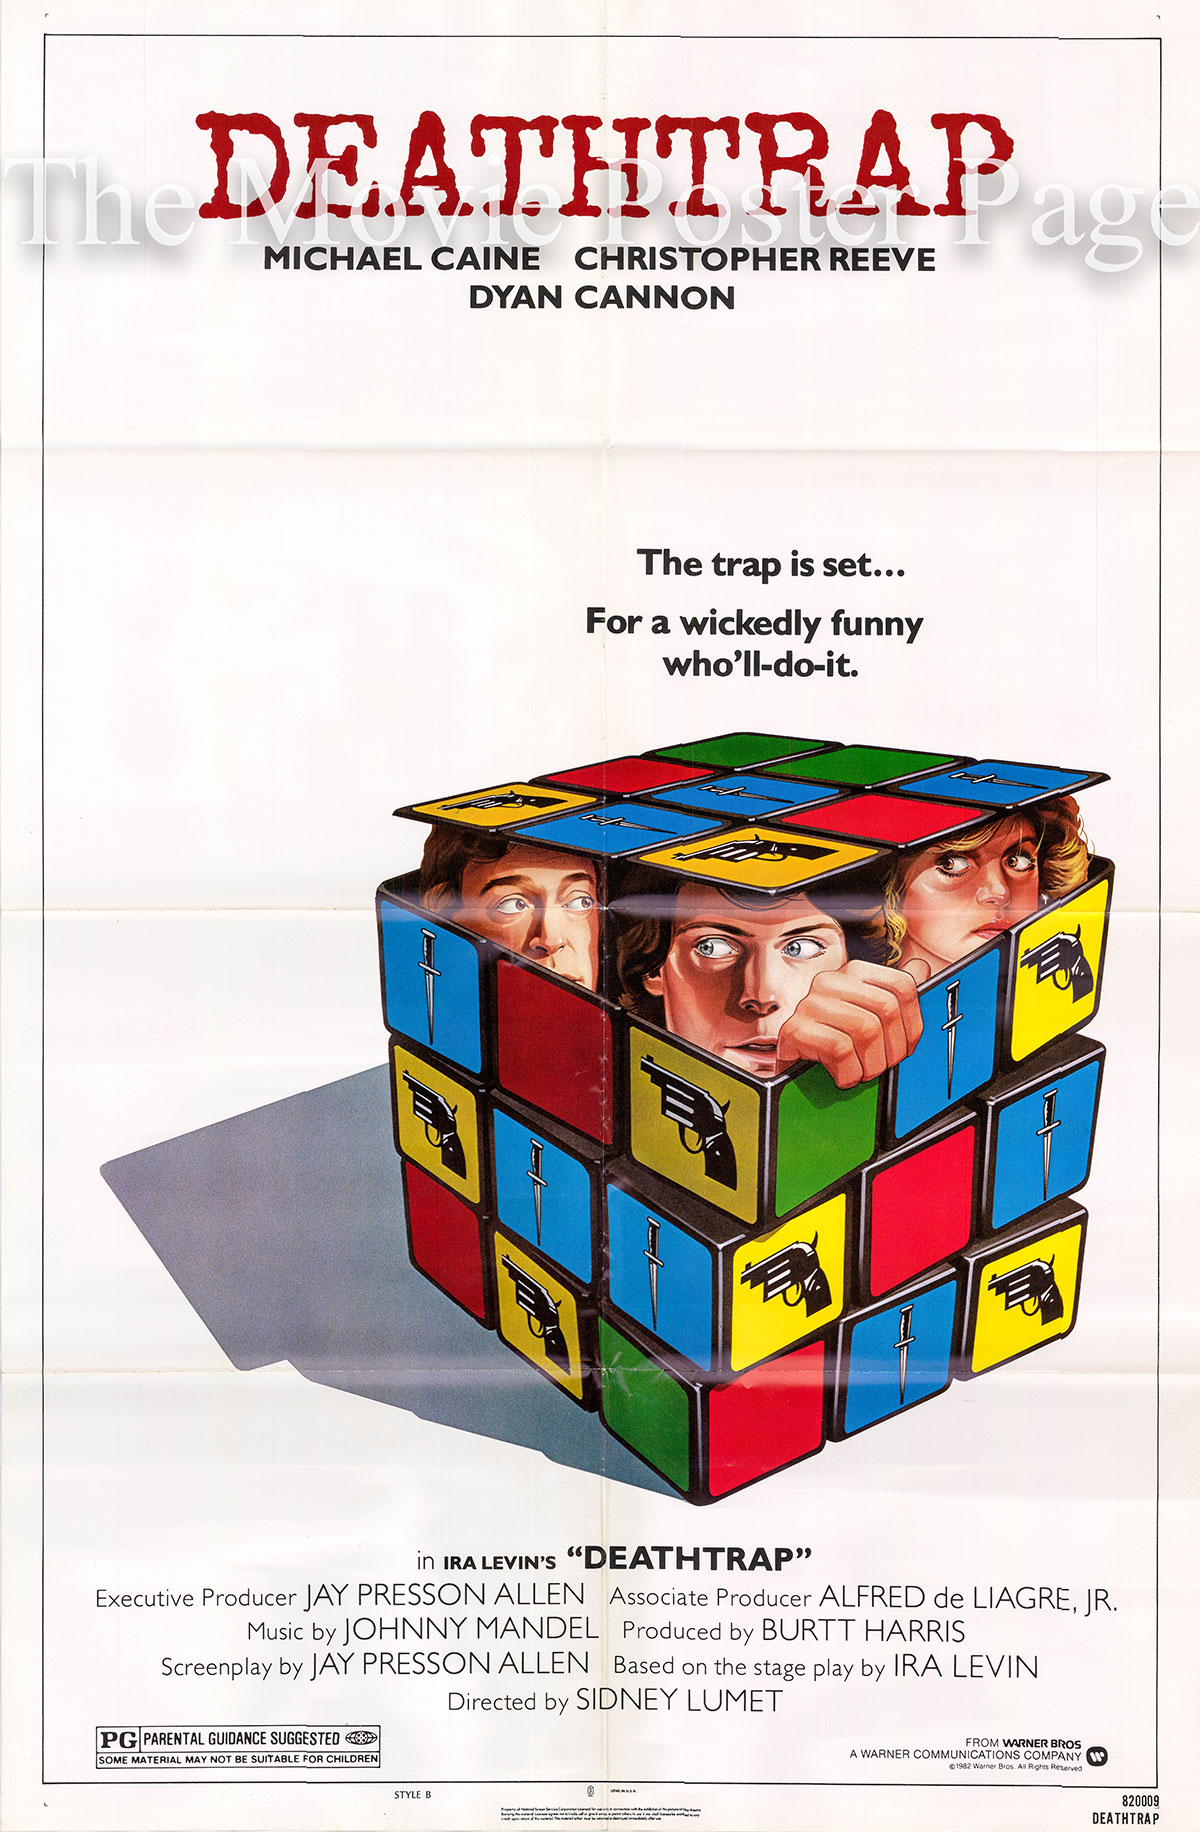 Pictured is a US one-sheet poster for the 1982 Sidney Lumet film Deathtrap starring Michael Caine as Sidney Bruhl.